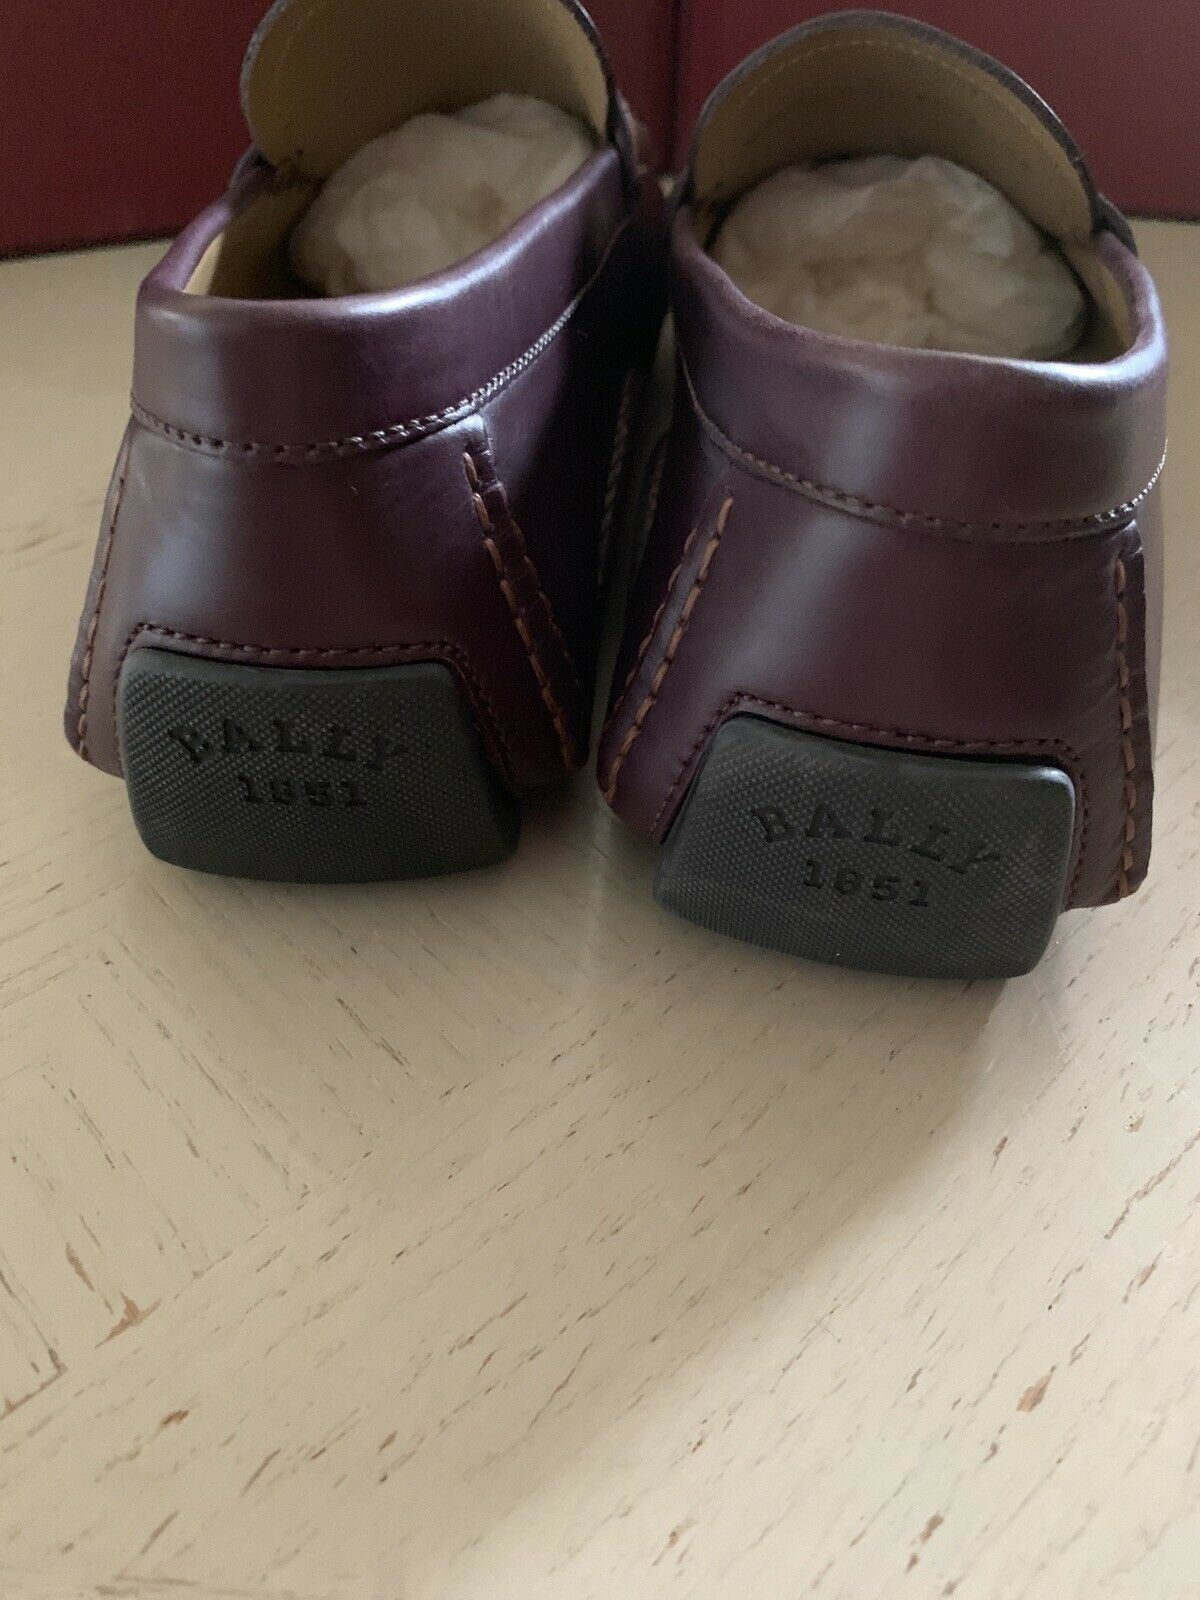 New $550 Bally Men Waltec Leather Driver Loafers Shoes DK Burgundy 8 US Italy